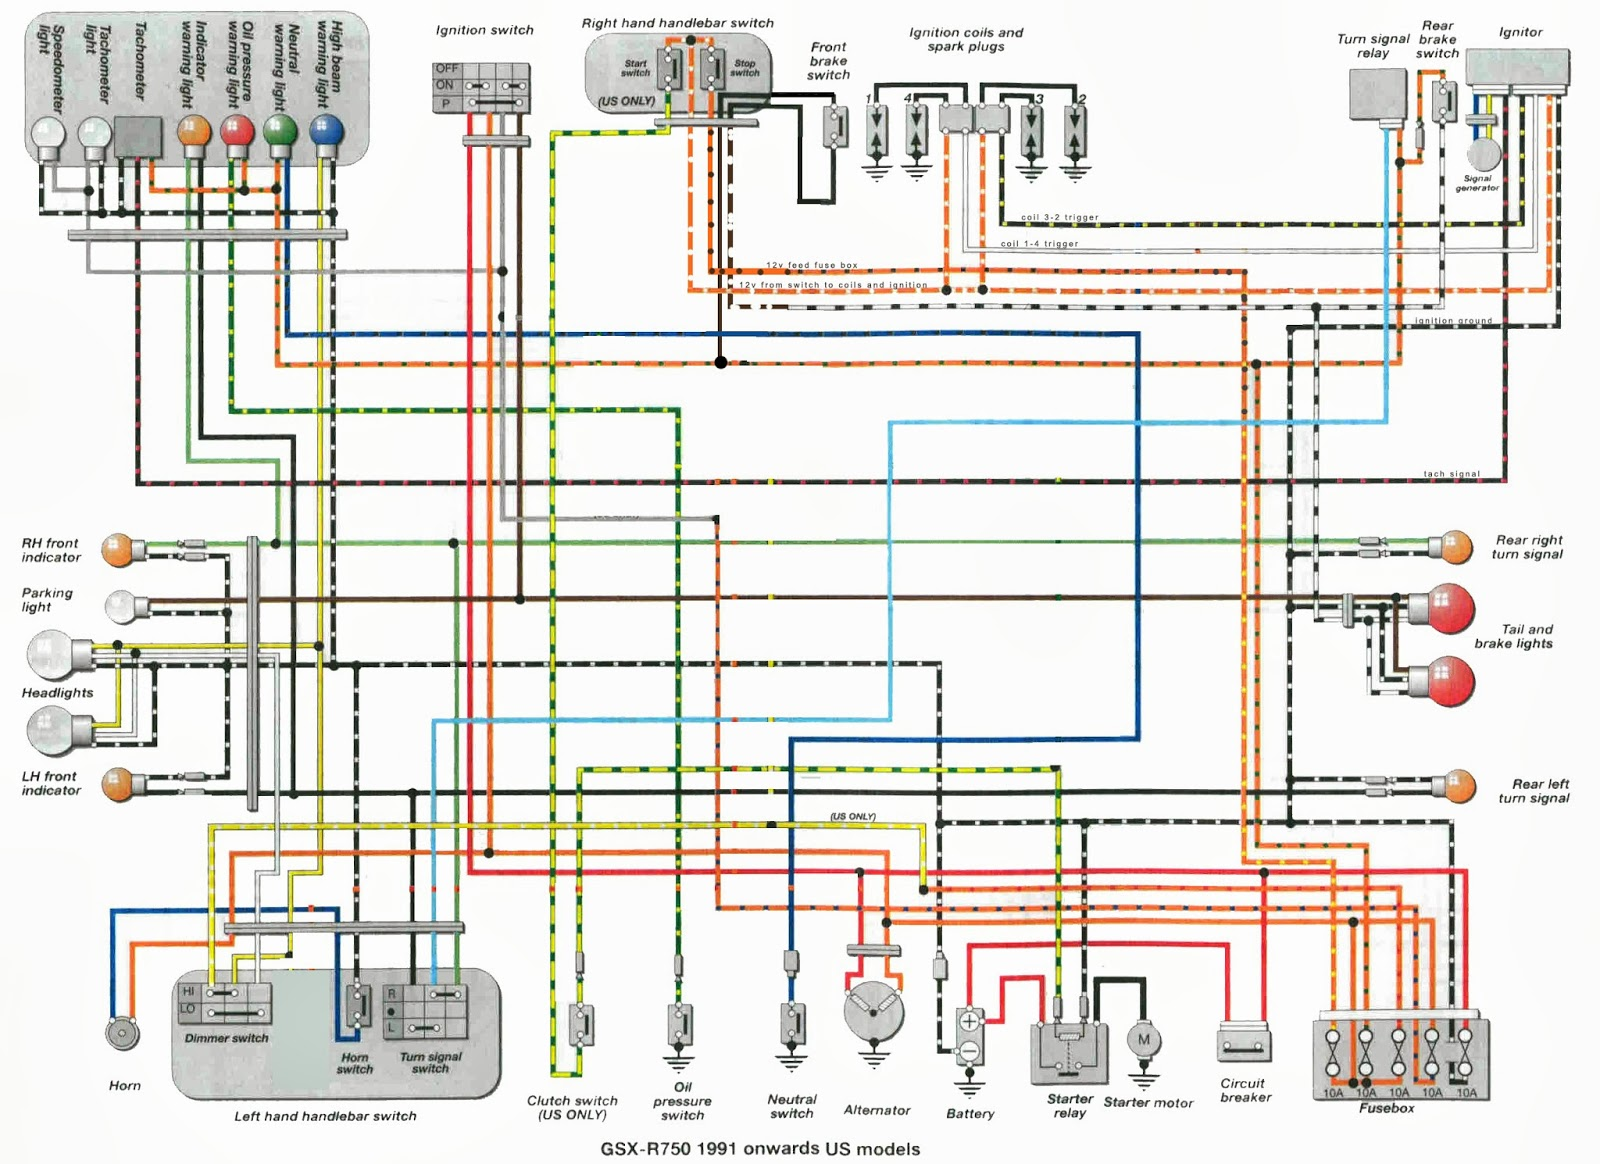 gsxr 750 wiring diagram gsxr image wiring diagram suzuki gsx r 600 wiring diagram suzuki printable wiring on gsxr 750 wiring diagram